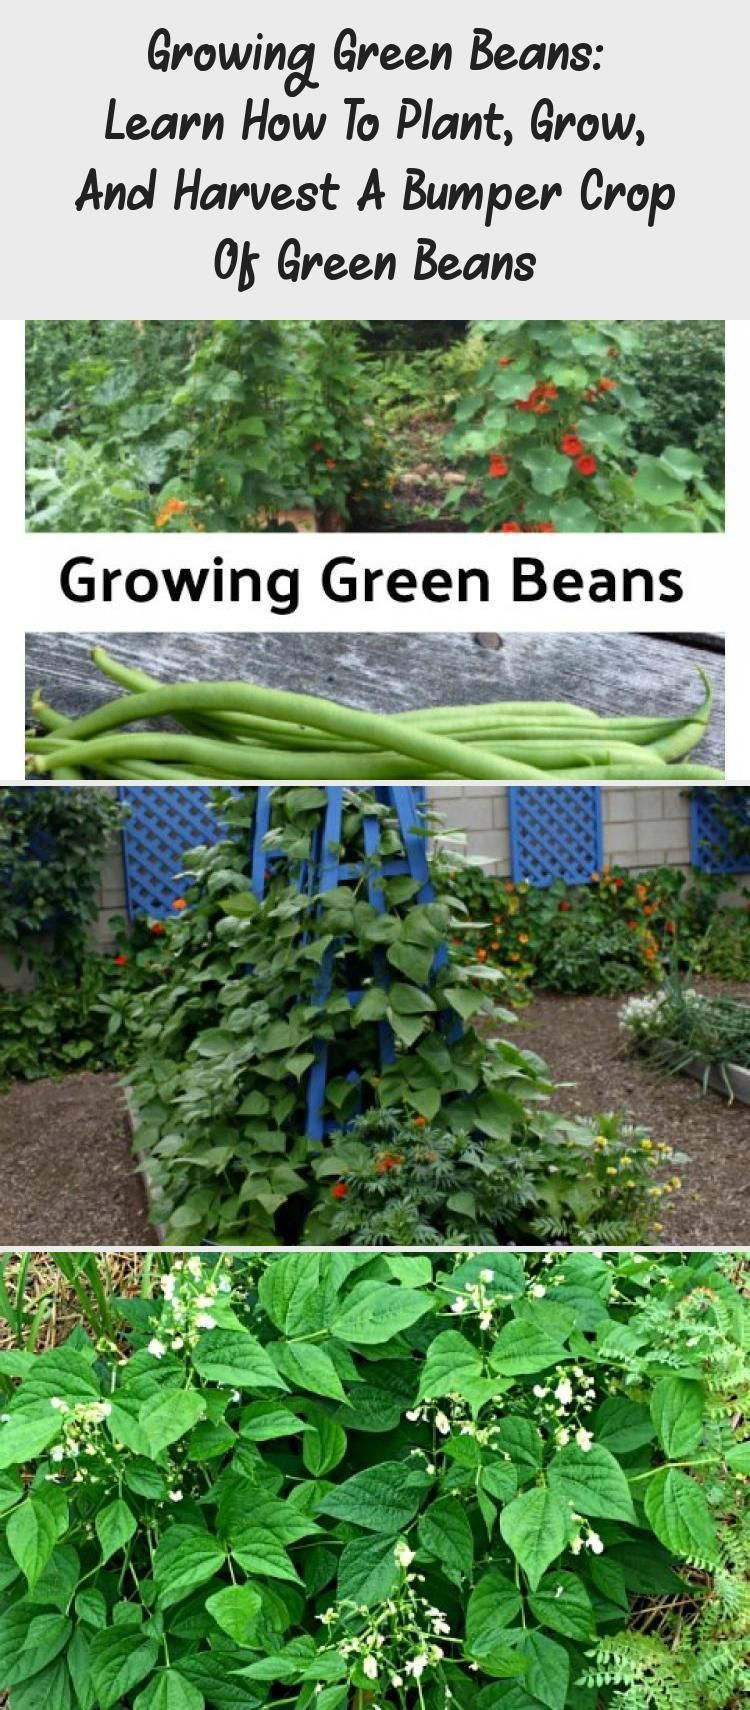 Growing Green Beans Learn How To Plant Grow And Harvest A Bumper Crop Of Gree Beans Bumper Growing Green Beans Vegetable Garden Trellis Growing Greens